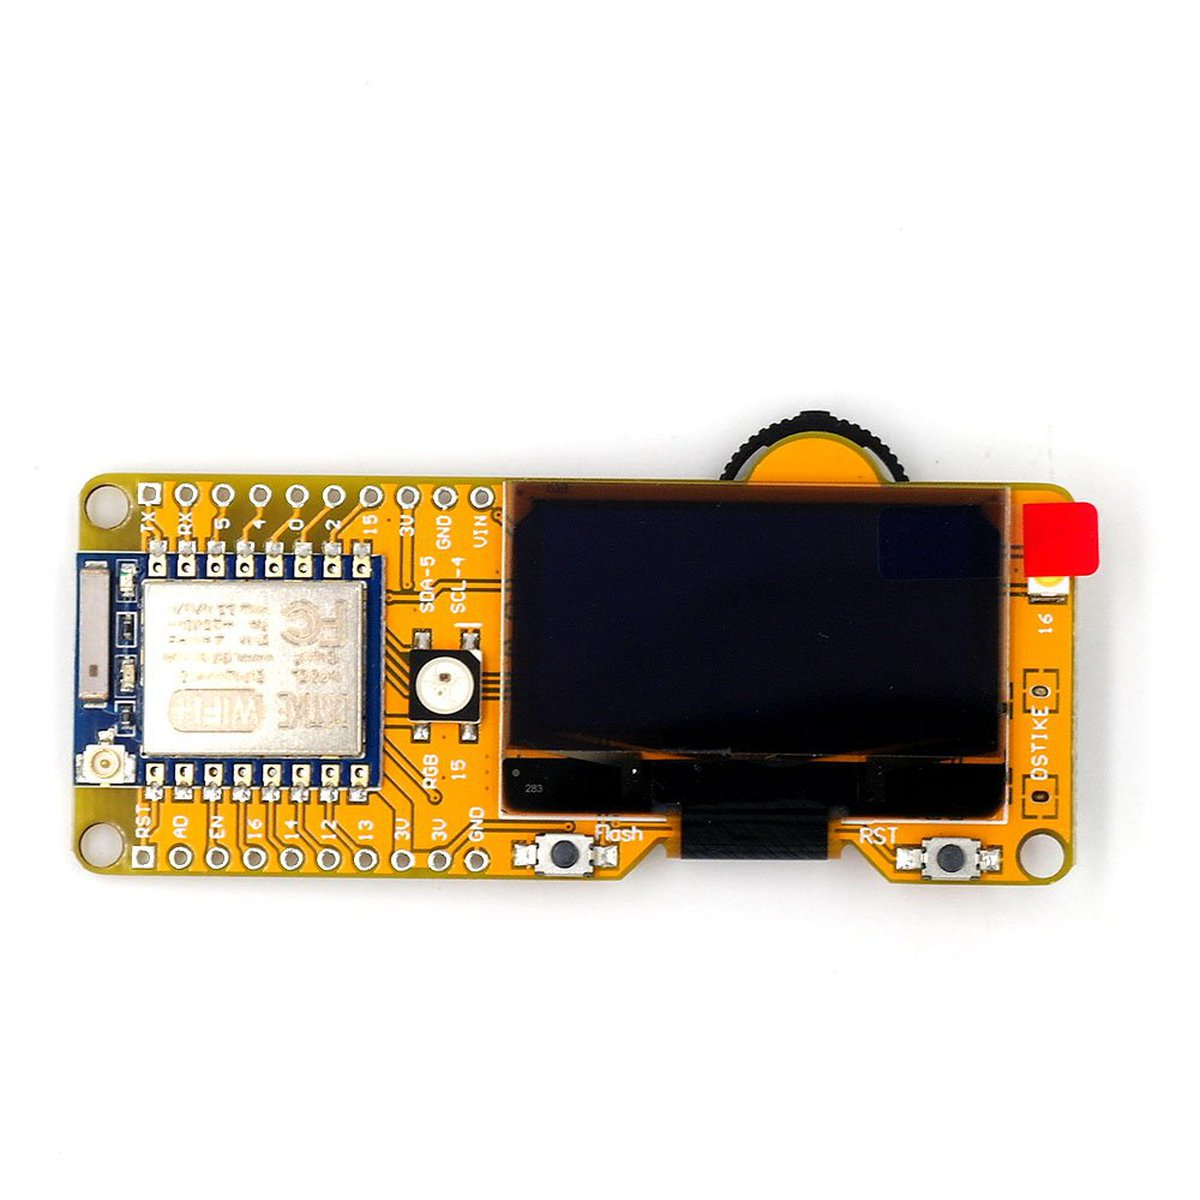 DSTIKE WiFi Deauther MiNi V2 from Travis Lin on Tindie